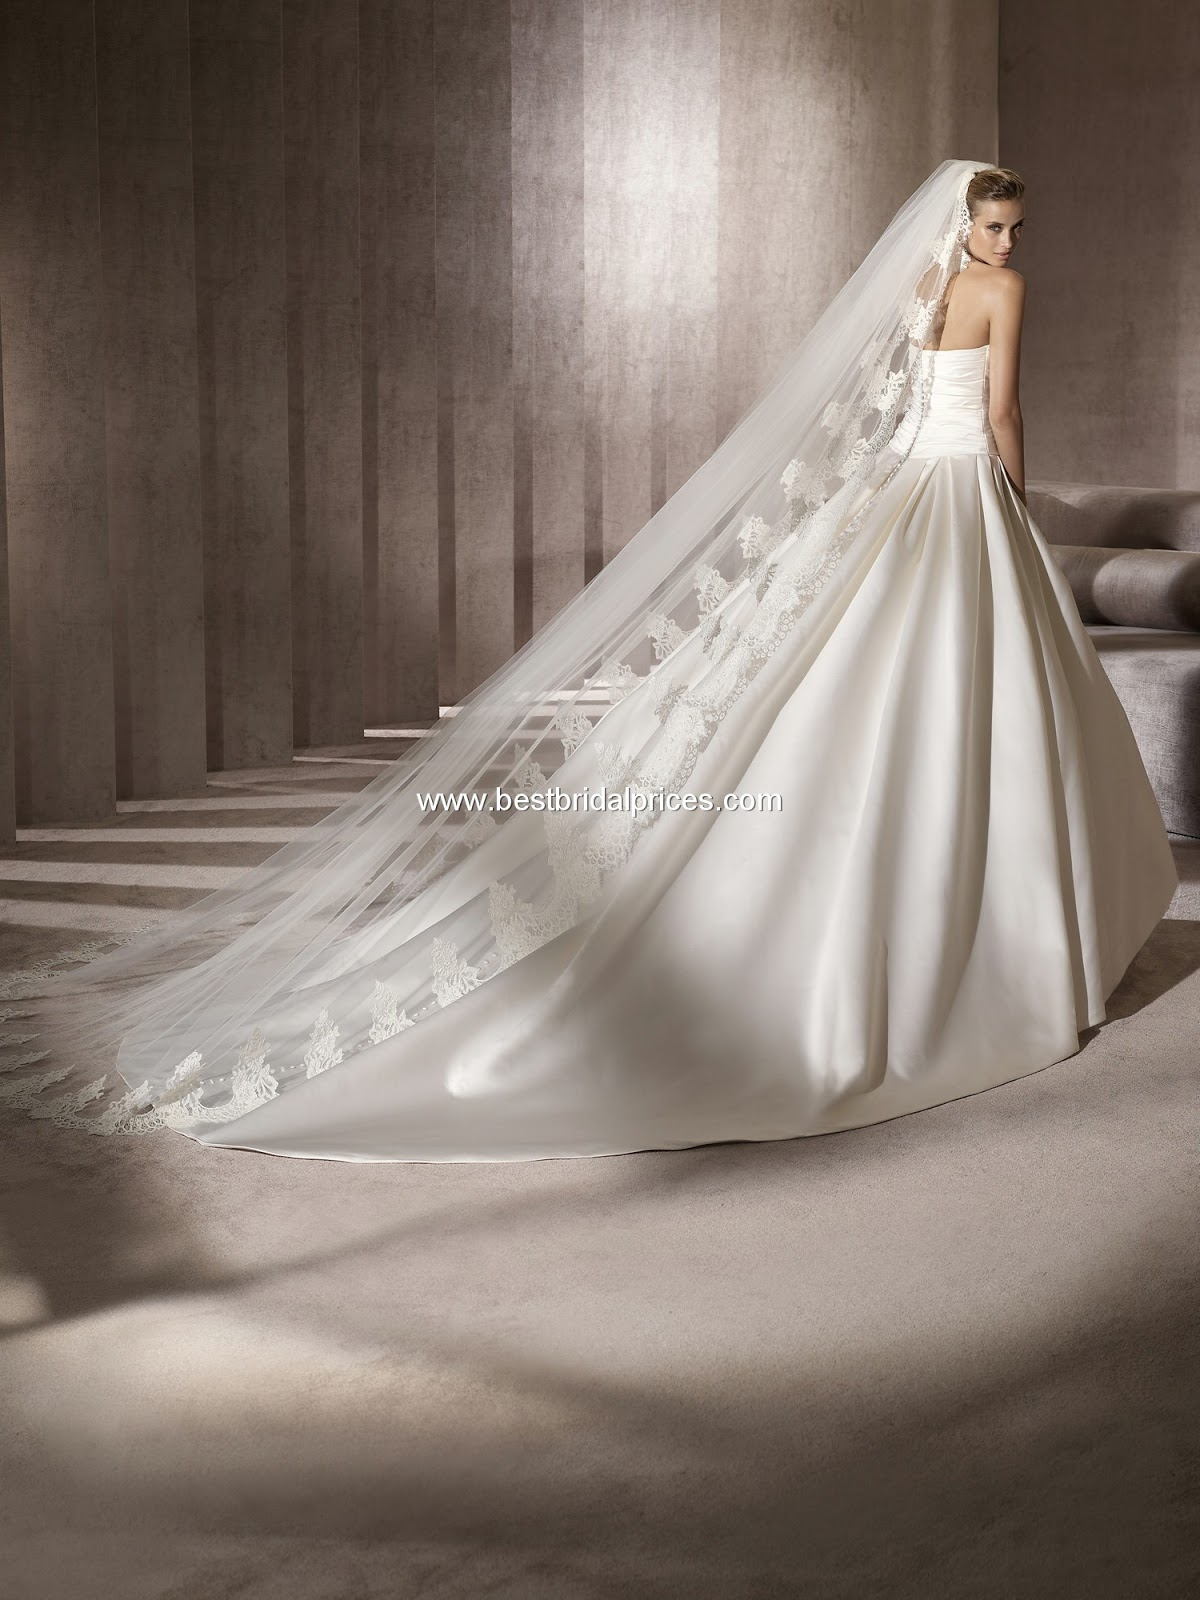 Eshtery egypt at senorita pronovias georgia wedding dress for Wedding dresses in ga